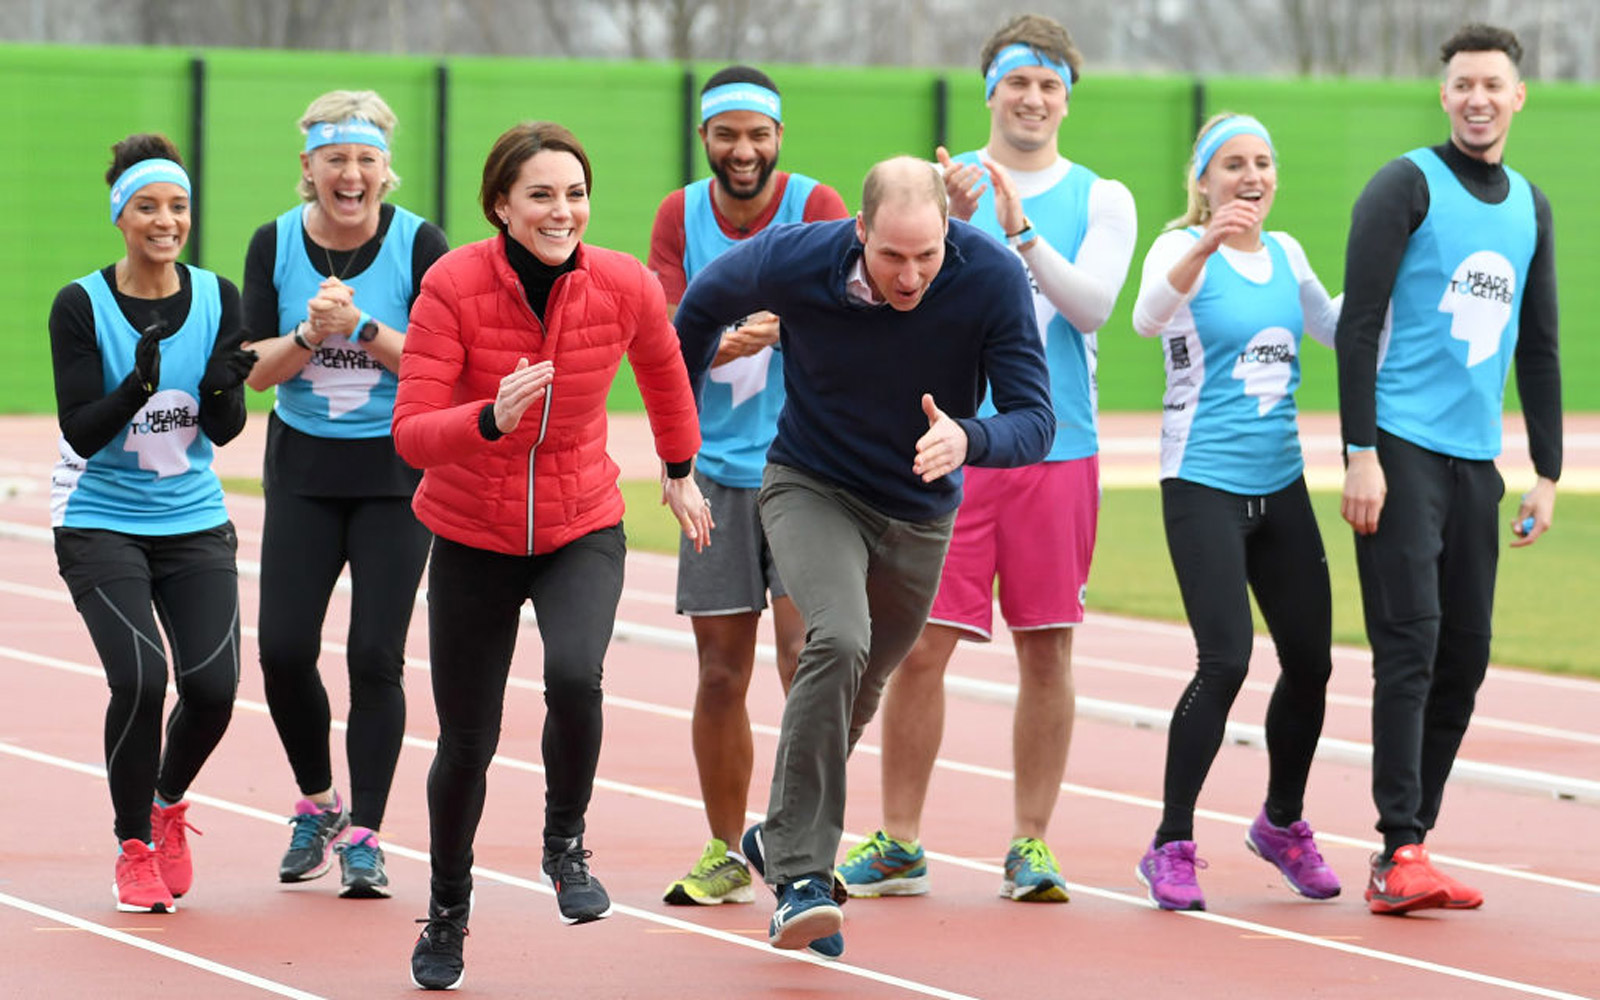 LONDON, ENGLAND - FEBRUARY 05:  Catherine, Duchess of Cambridge and Prince William, Duke of Cambridge attend a training day for the Heads Together team for the London Marathon at Olympic Park on February 5, 2017 in London, England.  (Photo by Karwai Tang/